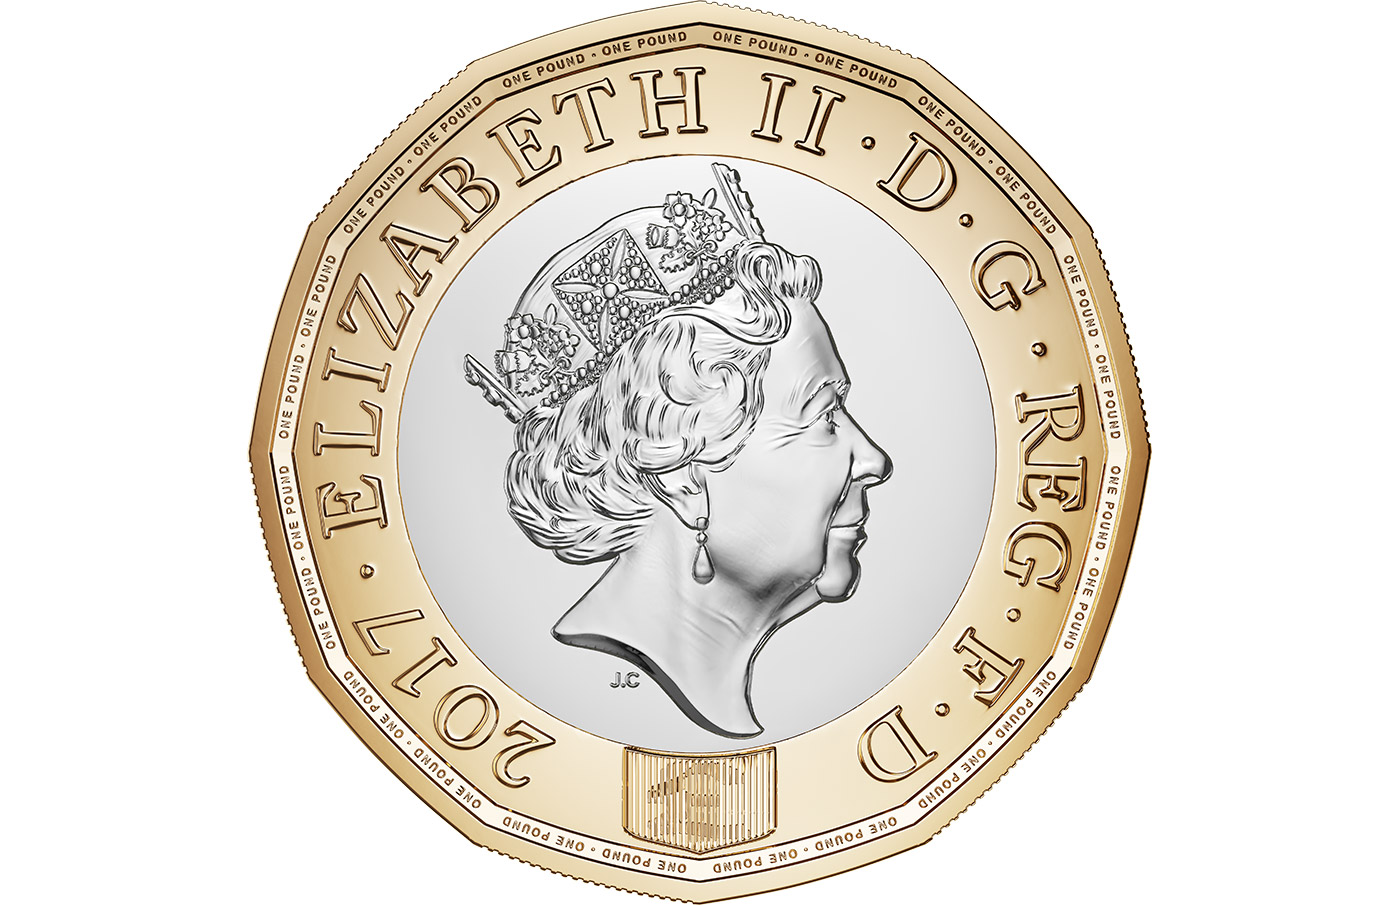 New one pound coin